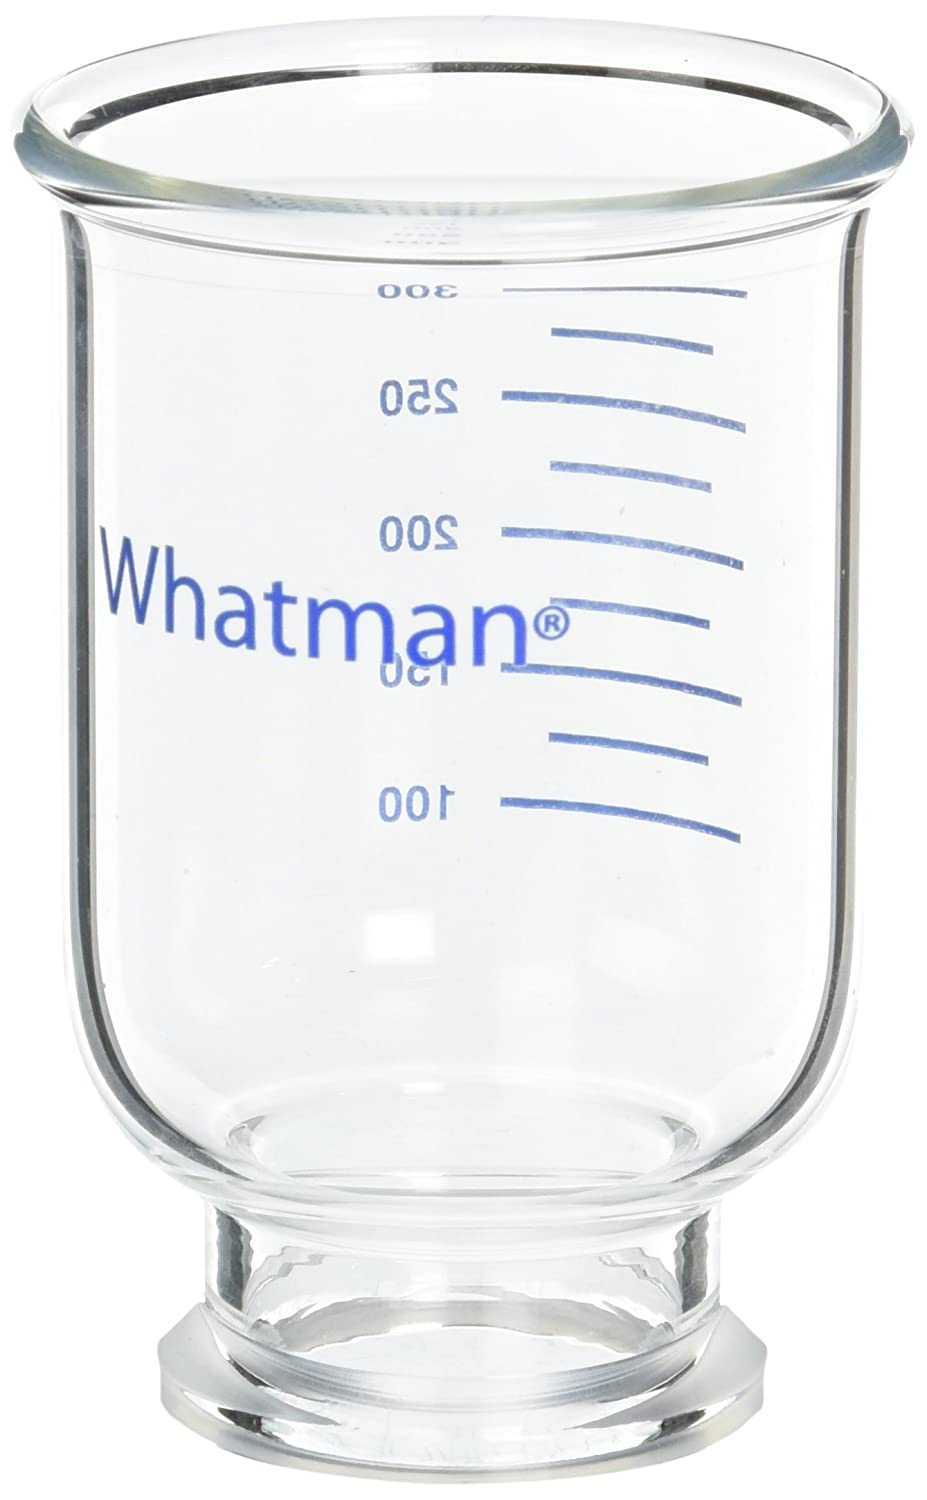 300mL Funnel Capacity GE Whatman 1961-054 Glass Vacuum Membrane Filter Holder with Glass Frit Filter Support and Rubber Stopper Connection Fits 4.7 Membrane Filters